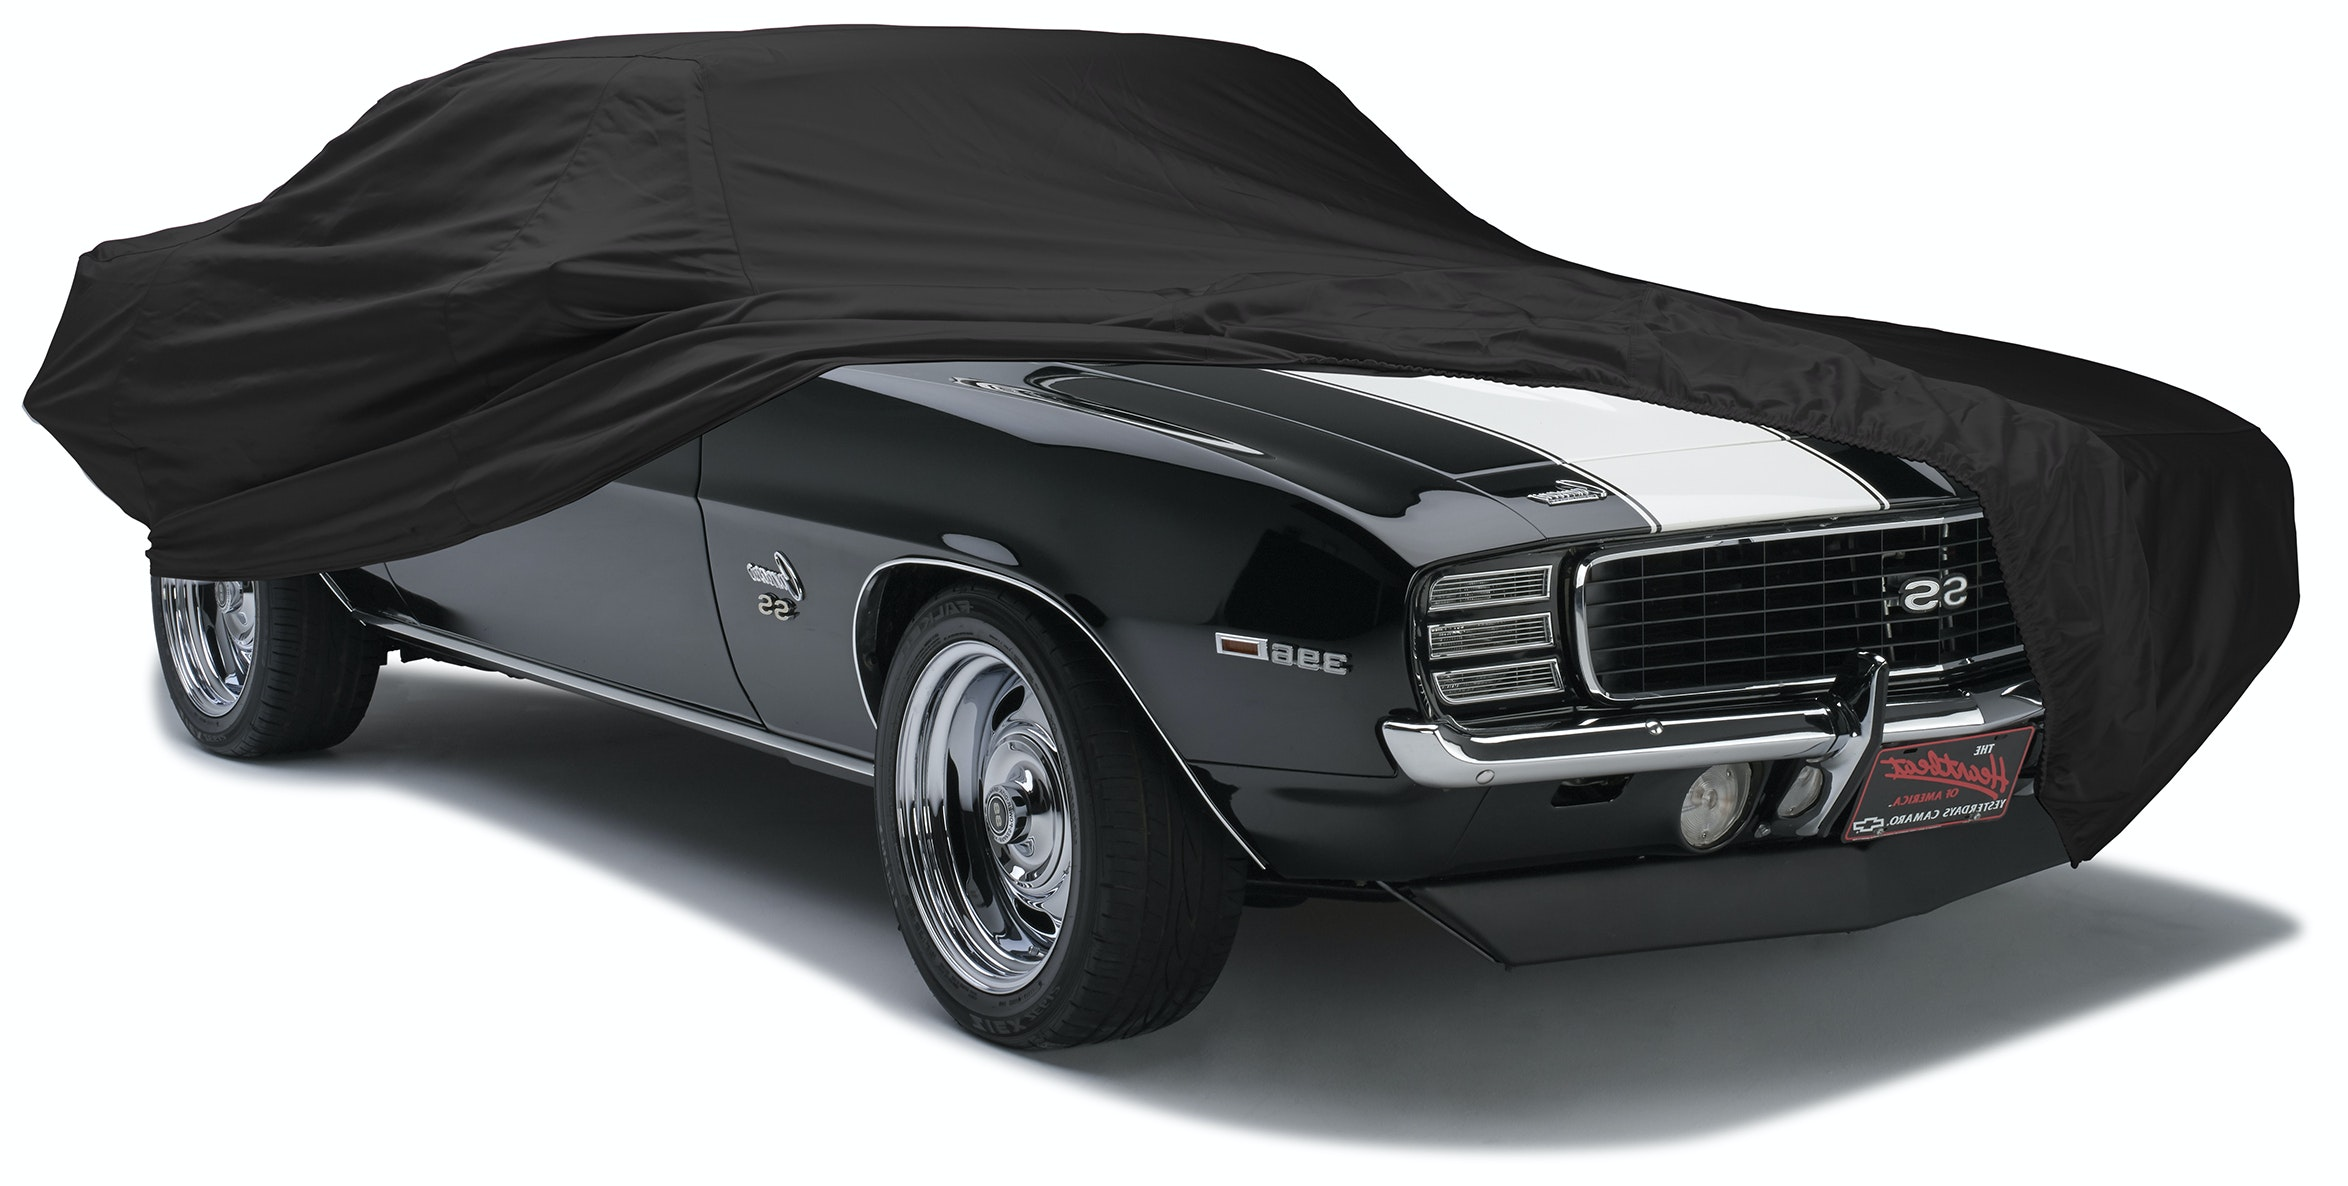 Covercraft Custom Fit Car Cover for Select Pontiac Firebird//Firebird Trans Am Models Black Fleeced Satin FS14546F5